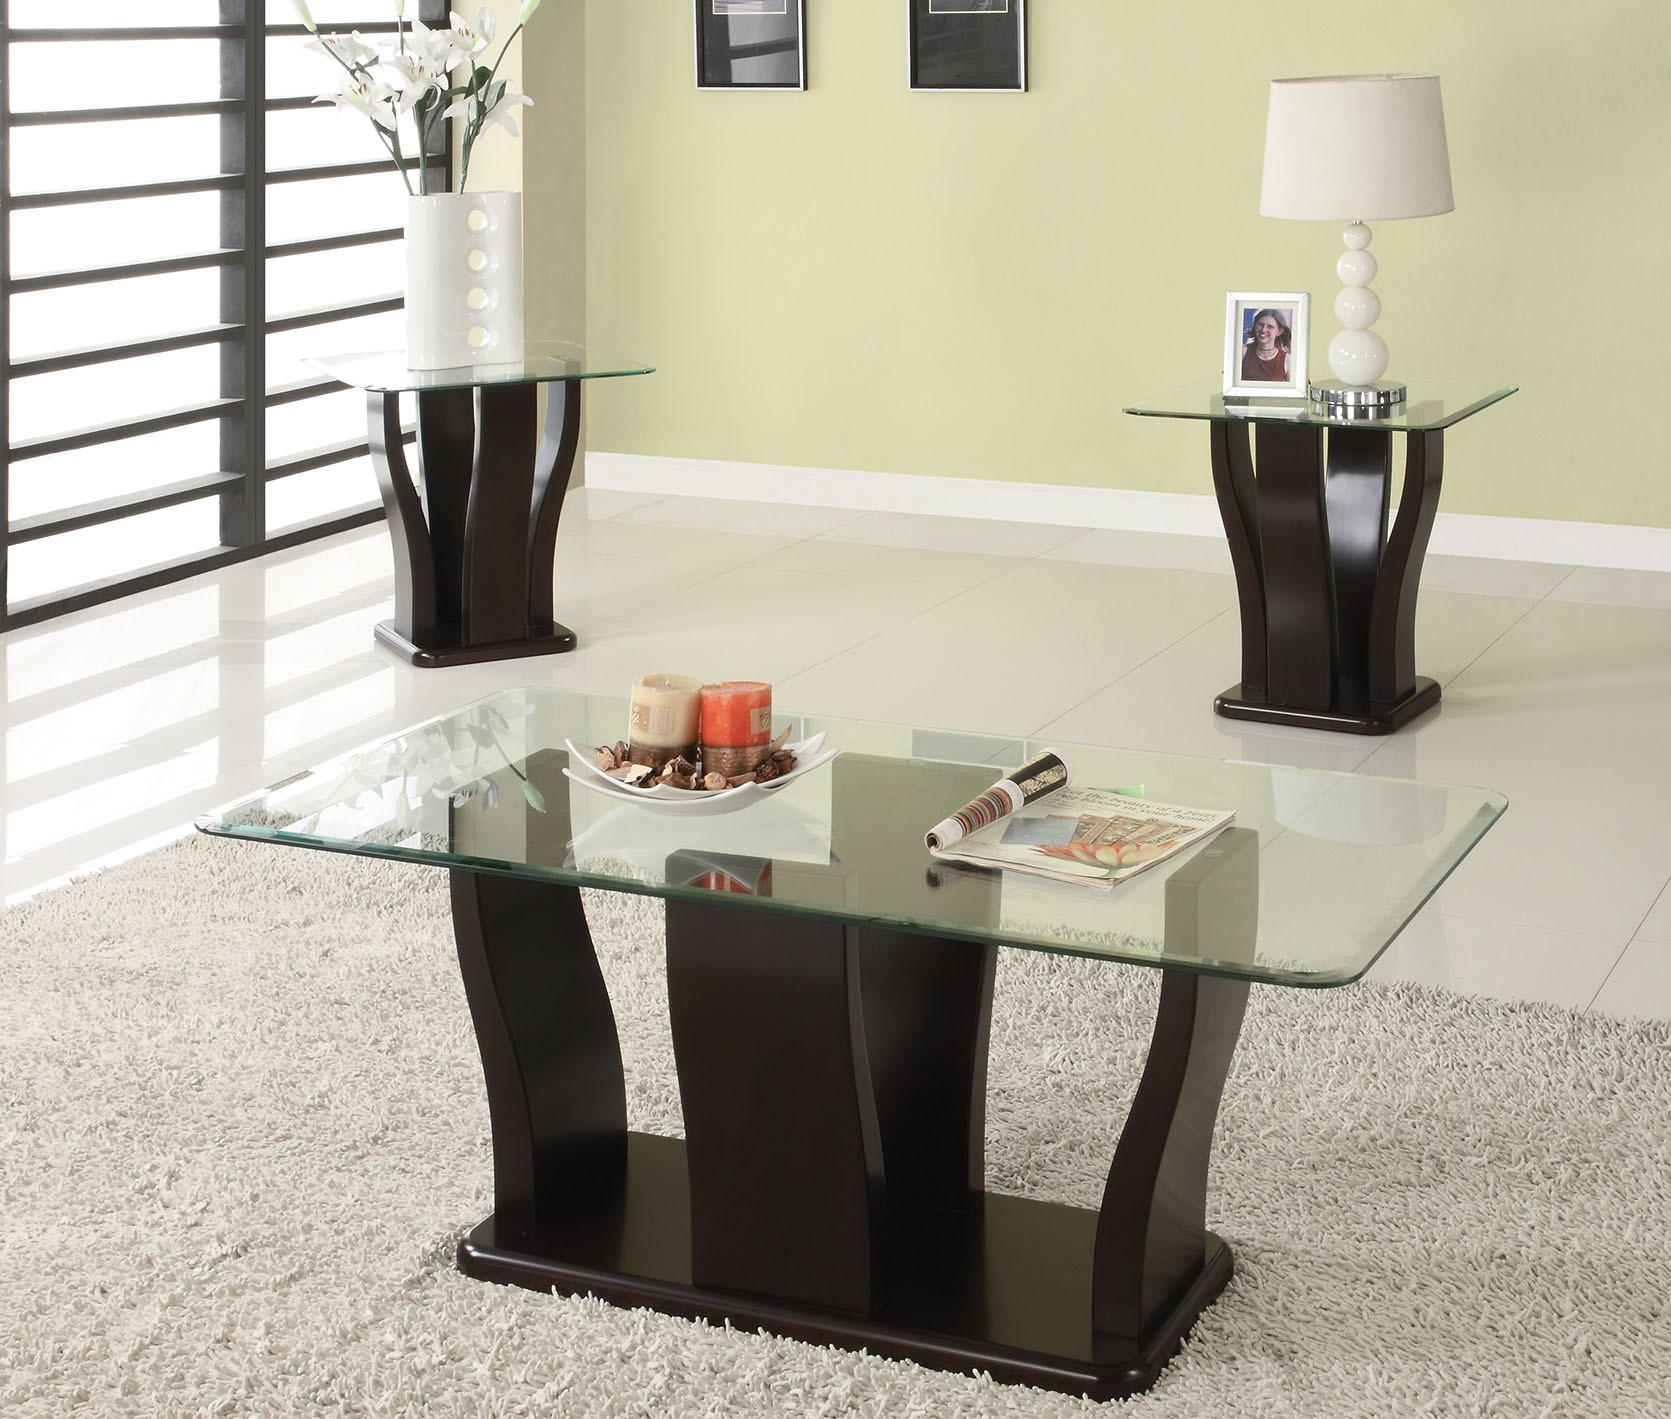 living room interesting macys end tables for small table design square wooden coffee round side with drawer oblong rounded edge oval glass top foyer wrought iron espresso accent